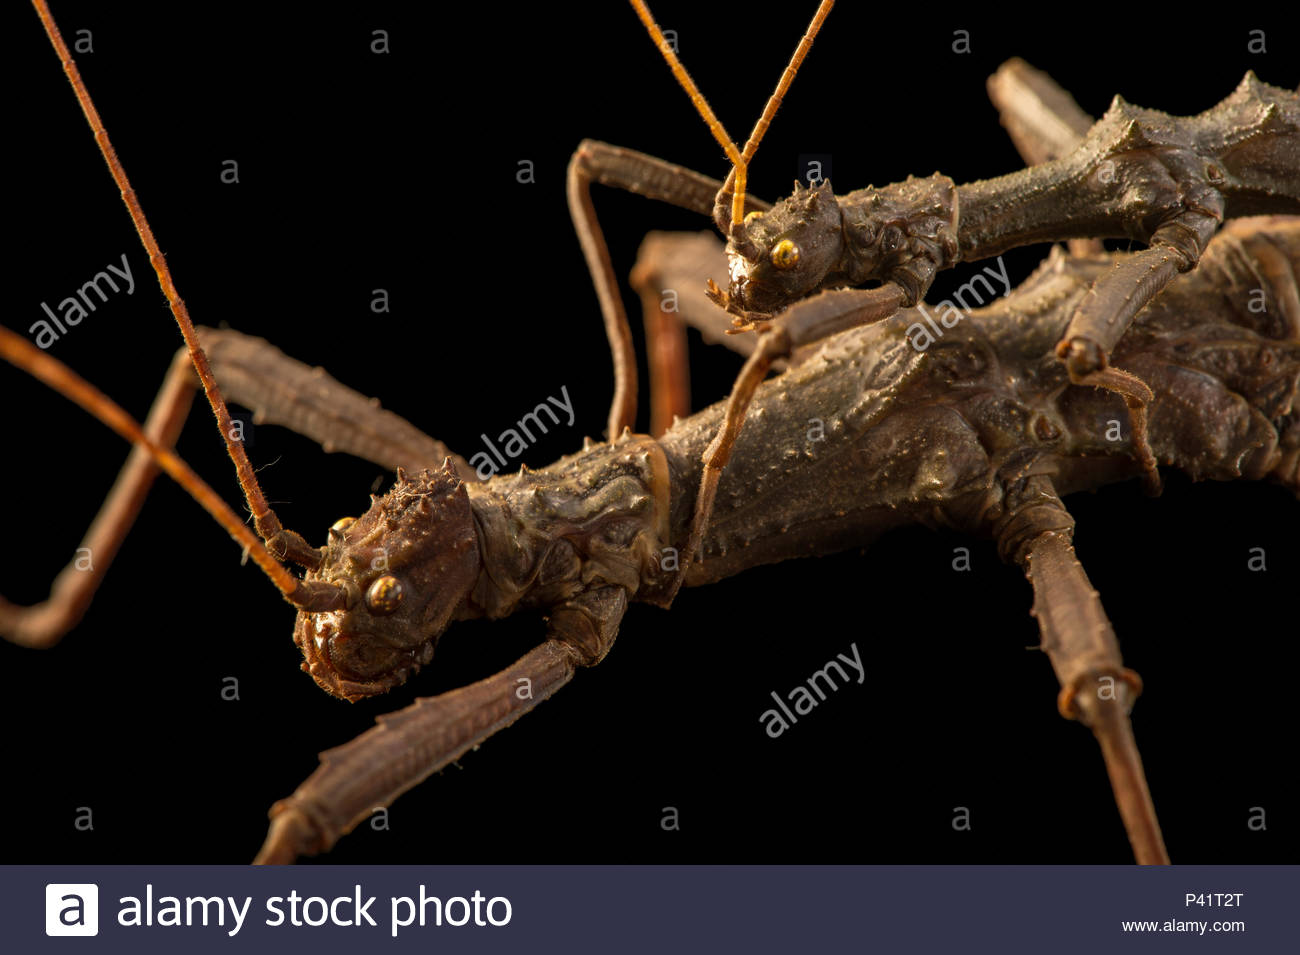 Giant thorn cricket, Trachyaretaon carmelae, at the Budapest Zoo. - Stock Image